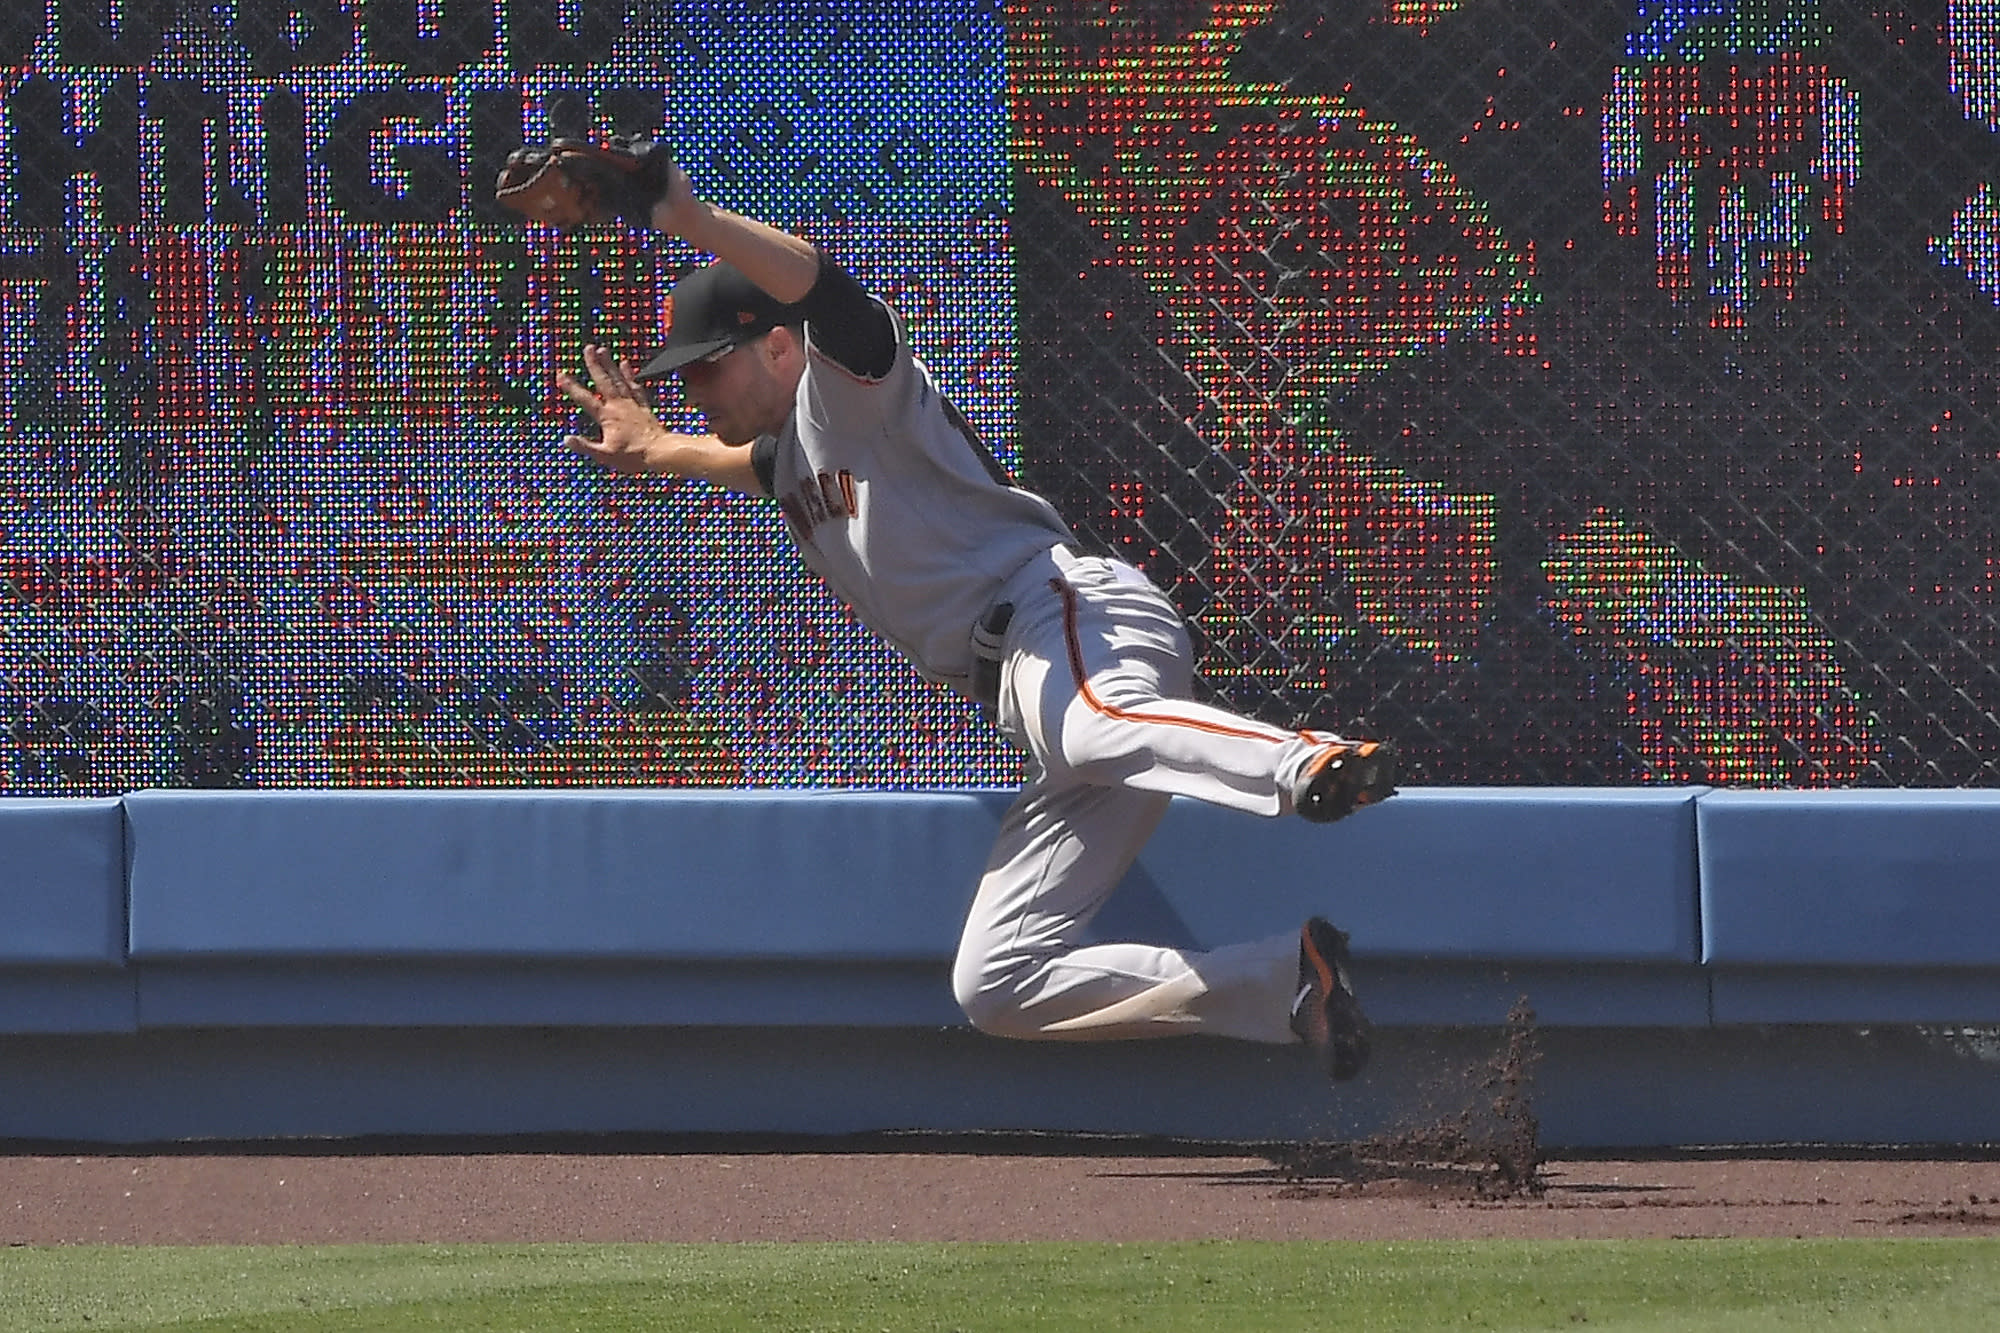 San Francisco Giants left fielder Austin Slater makes a catch on a ball hit by Los Angeles Dodgers' Corey Seager during the sixth inning of a baseball game Saturday, July 25, 2020, in Los Angeles. (AP Photo/Mark J. Terrill)